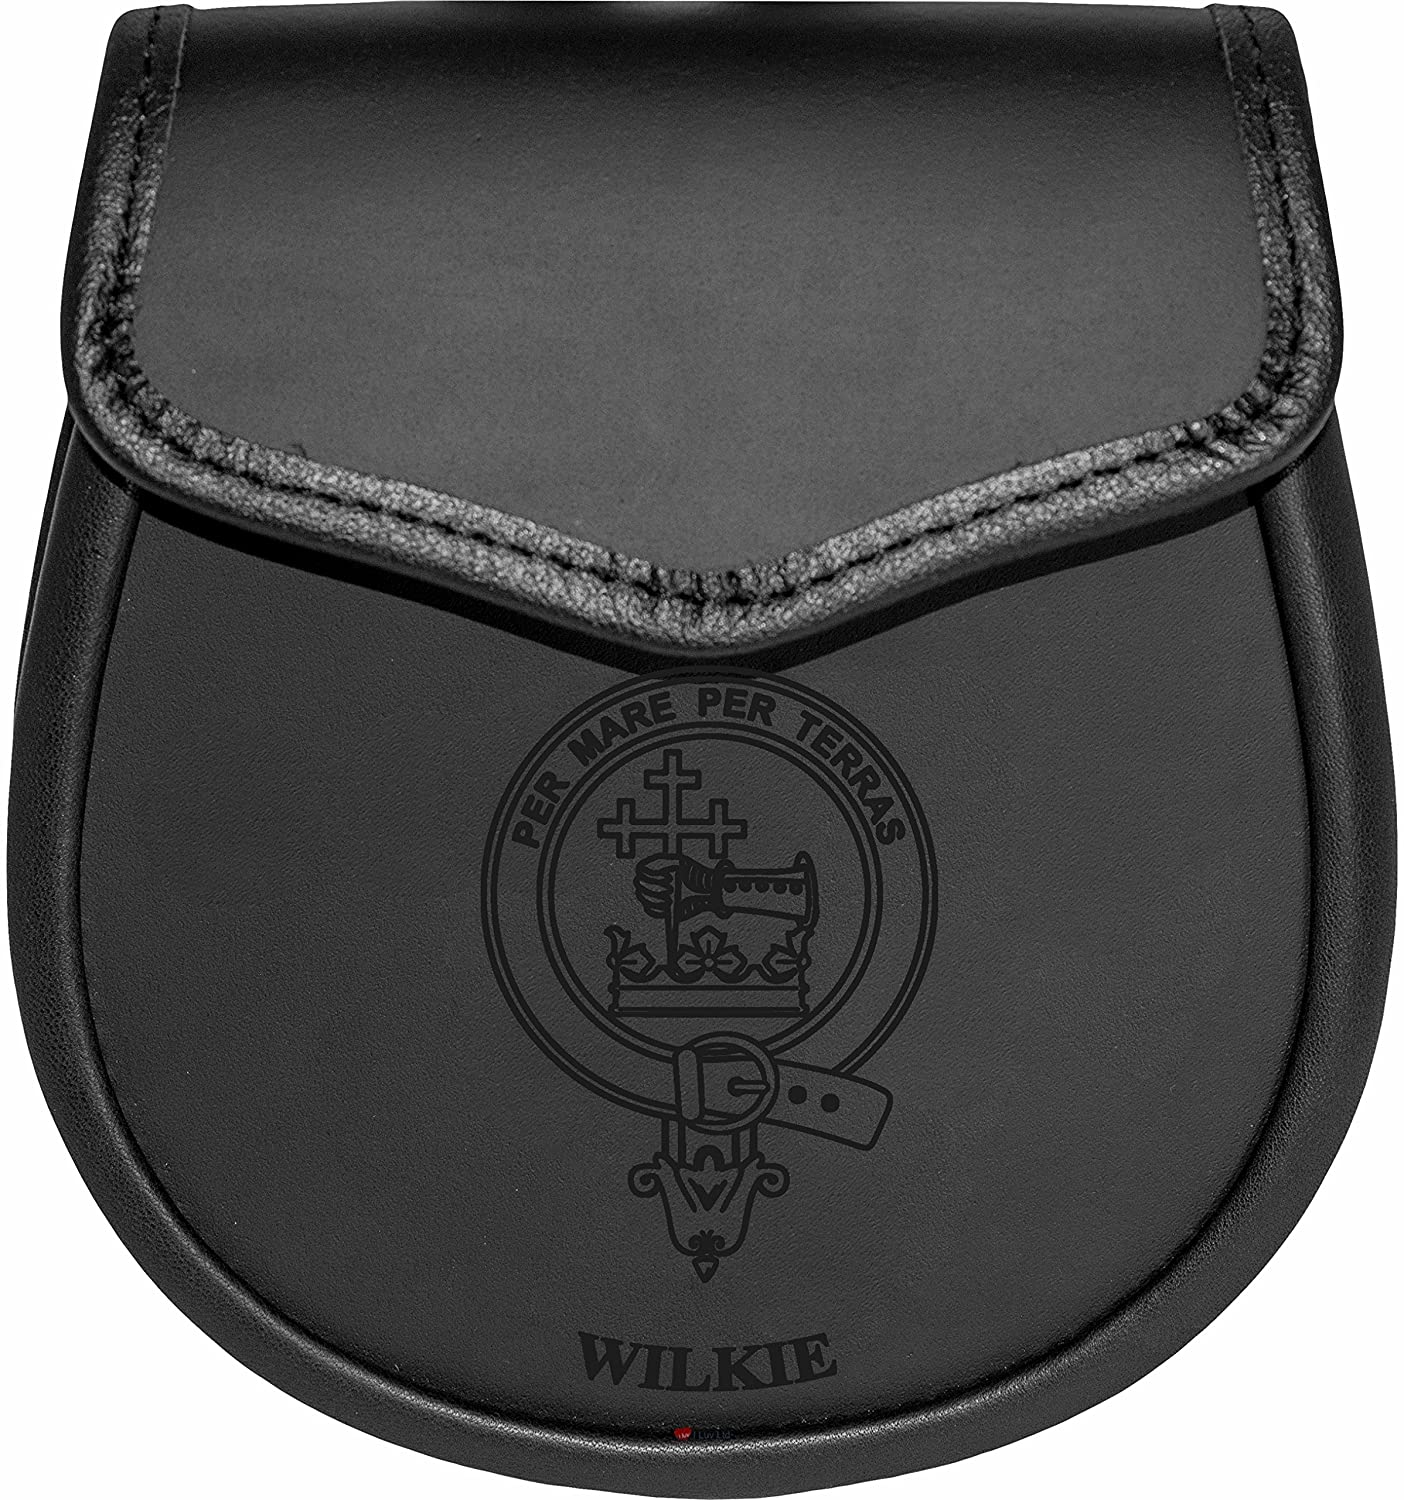 Wilkie Leather Day Sporran Scottish Clan Crest